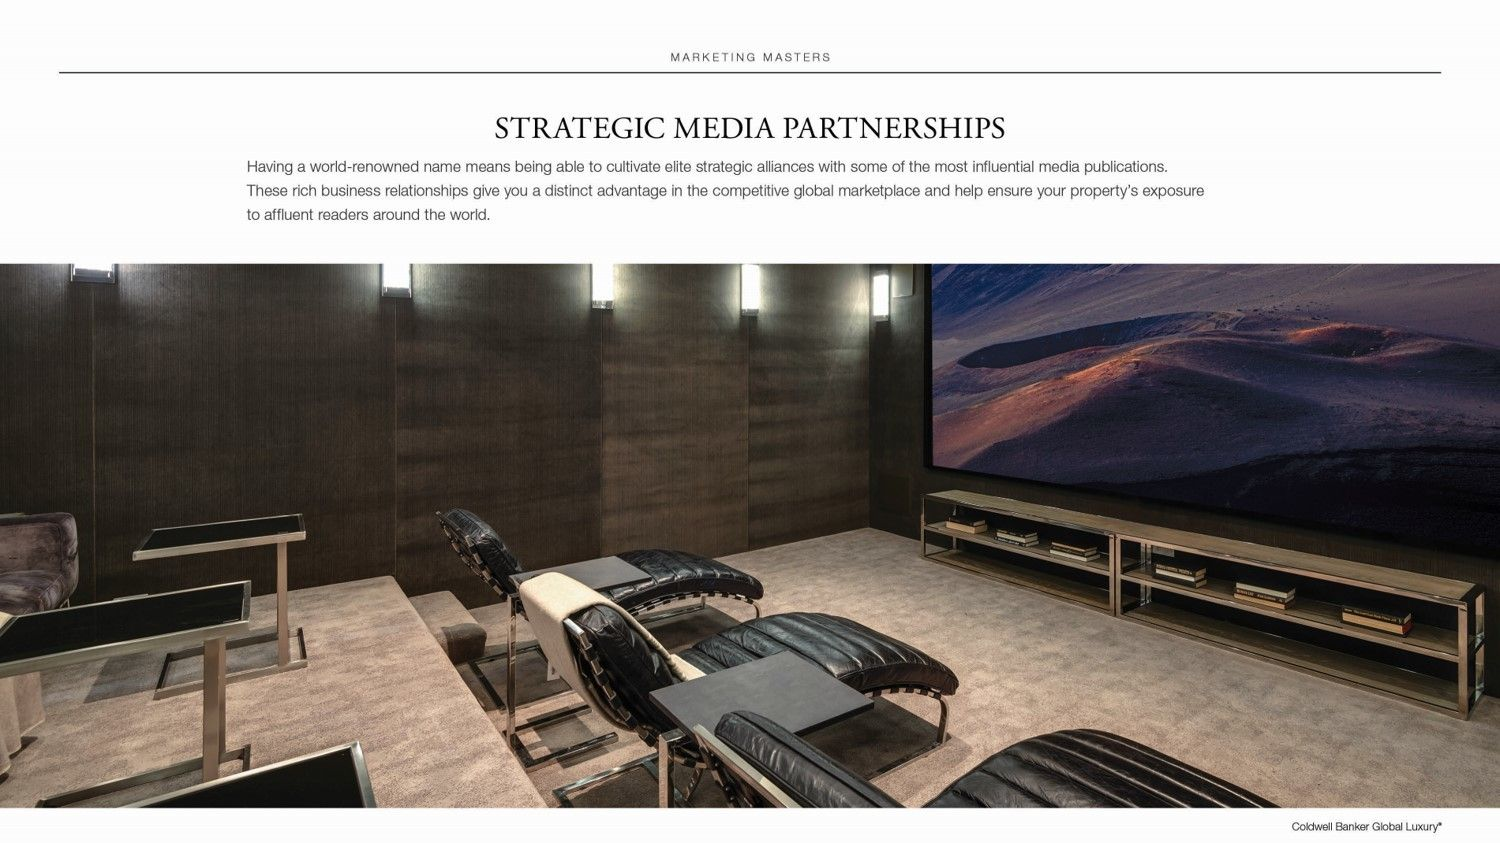 coldwell-banker-global-luxury-strategic-media-partnerships